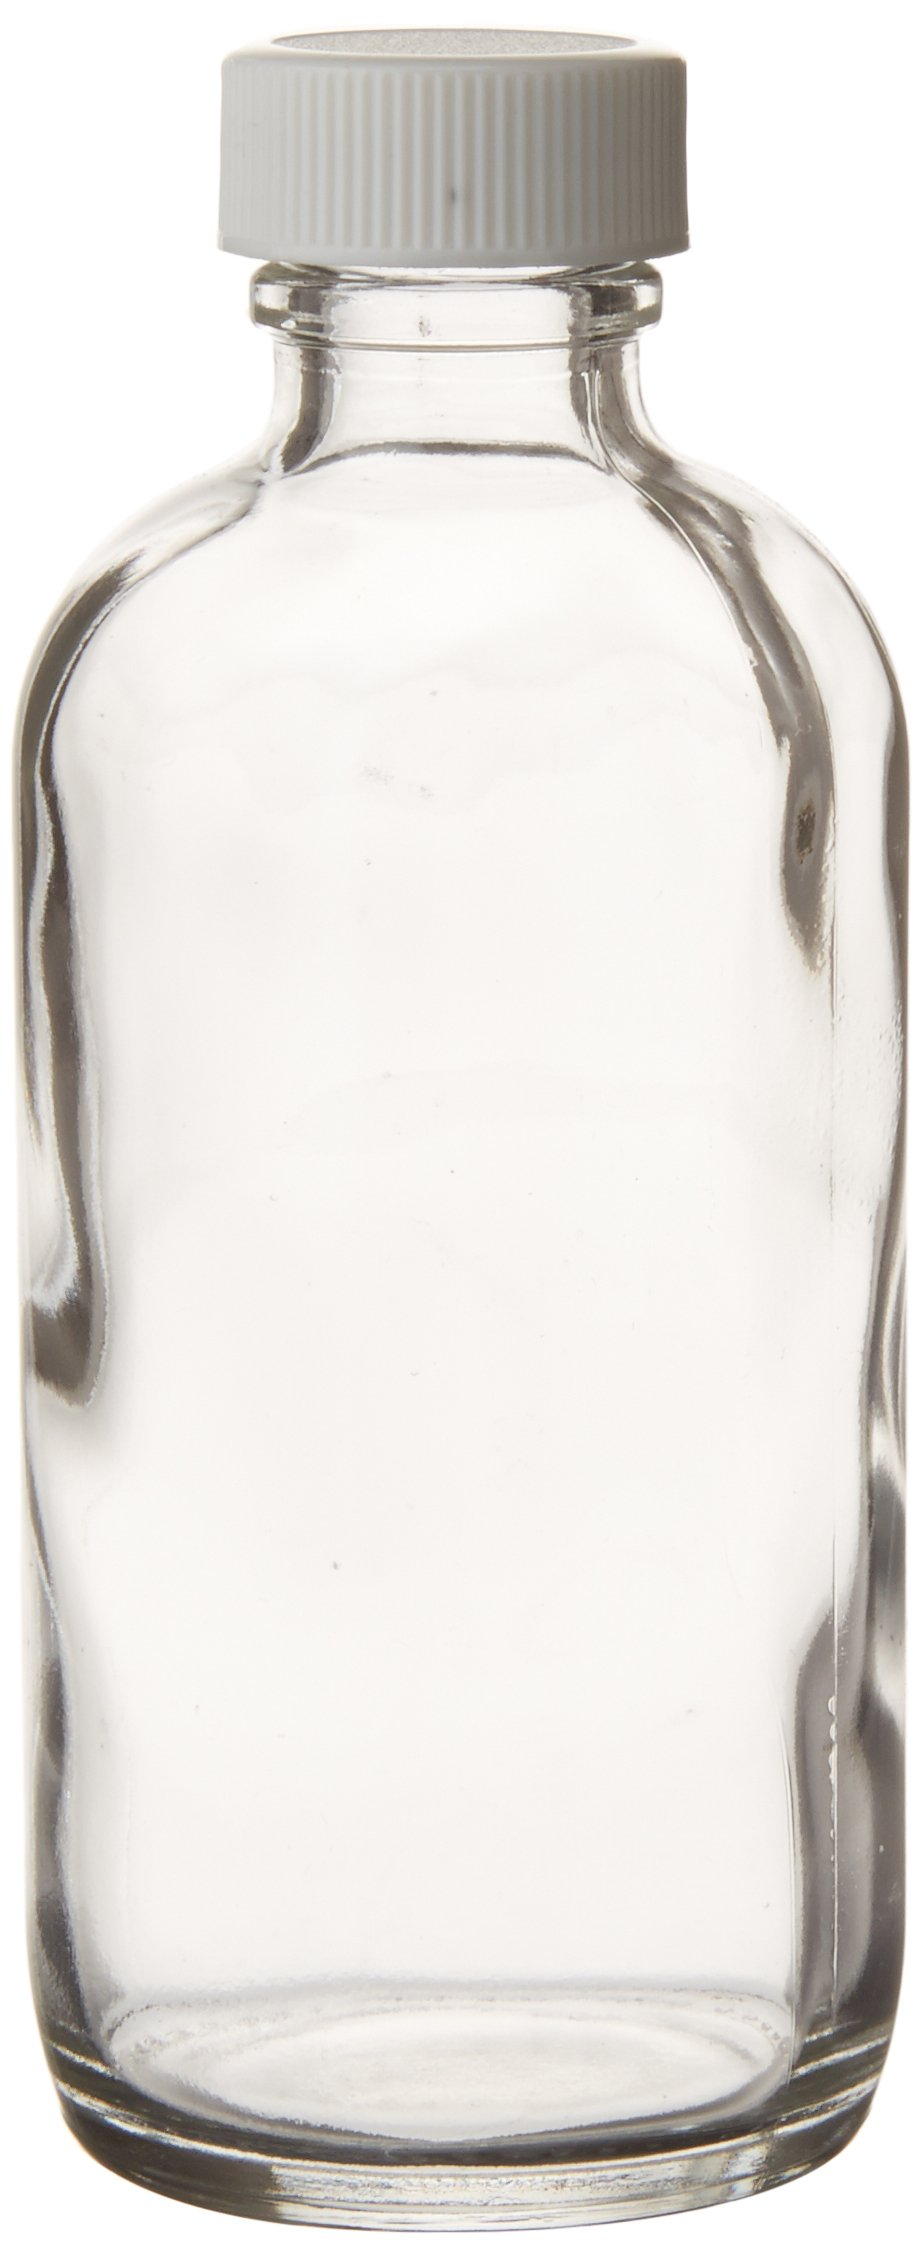 JG Finneran 9-172 Clear Borosilicate Glass Standard Boston Round Bottle with White Polypropylene Closure and 0.015'' PTFE Lined, 22-400mm Cap Size, 125mL Capacity (Pack of 24)